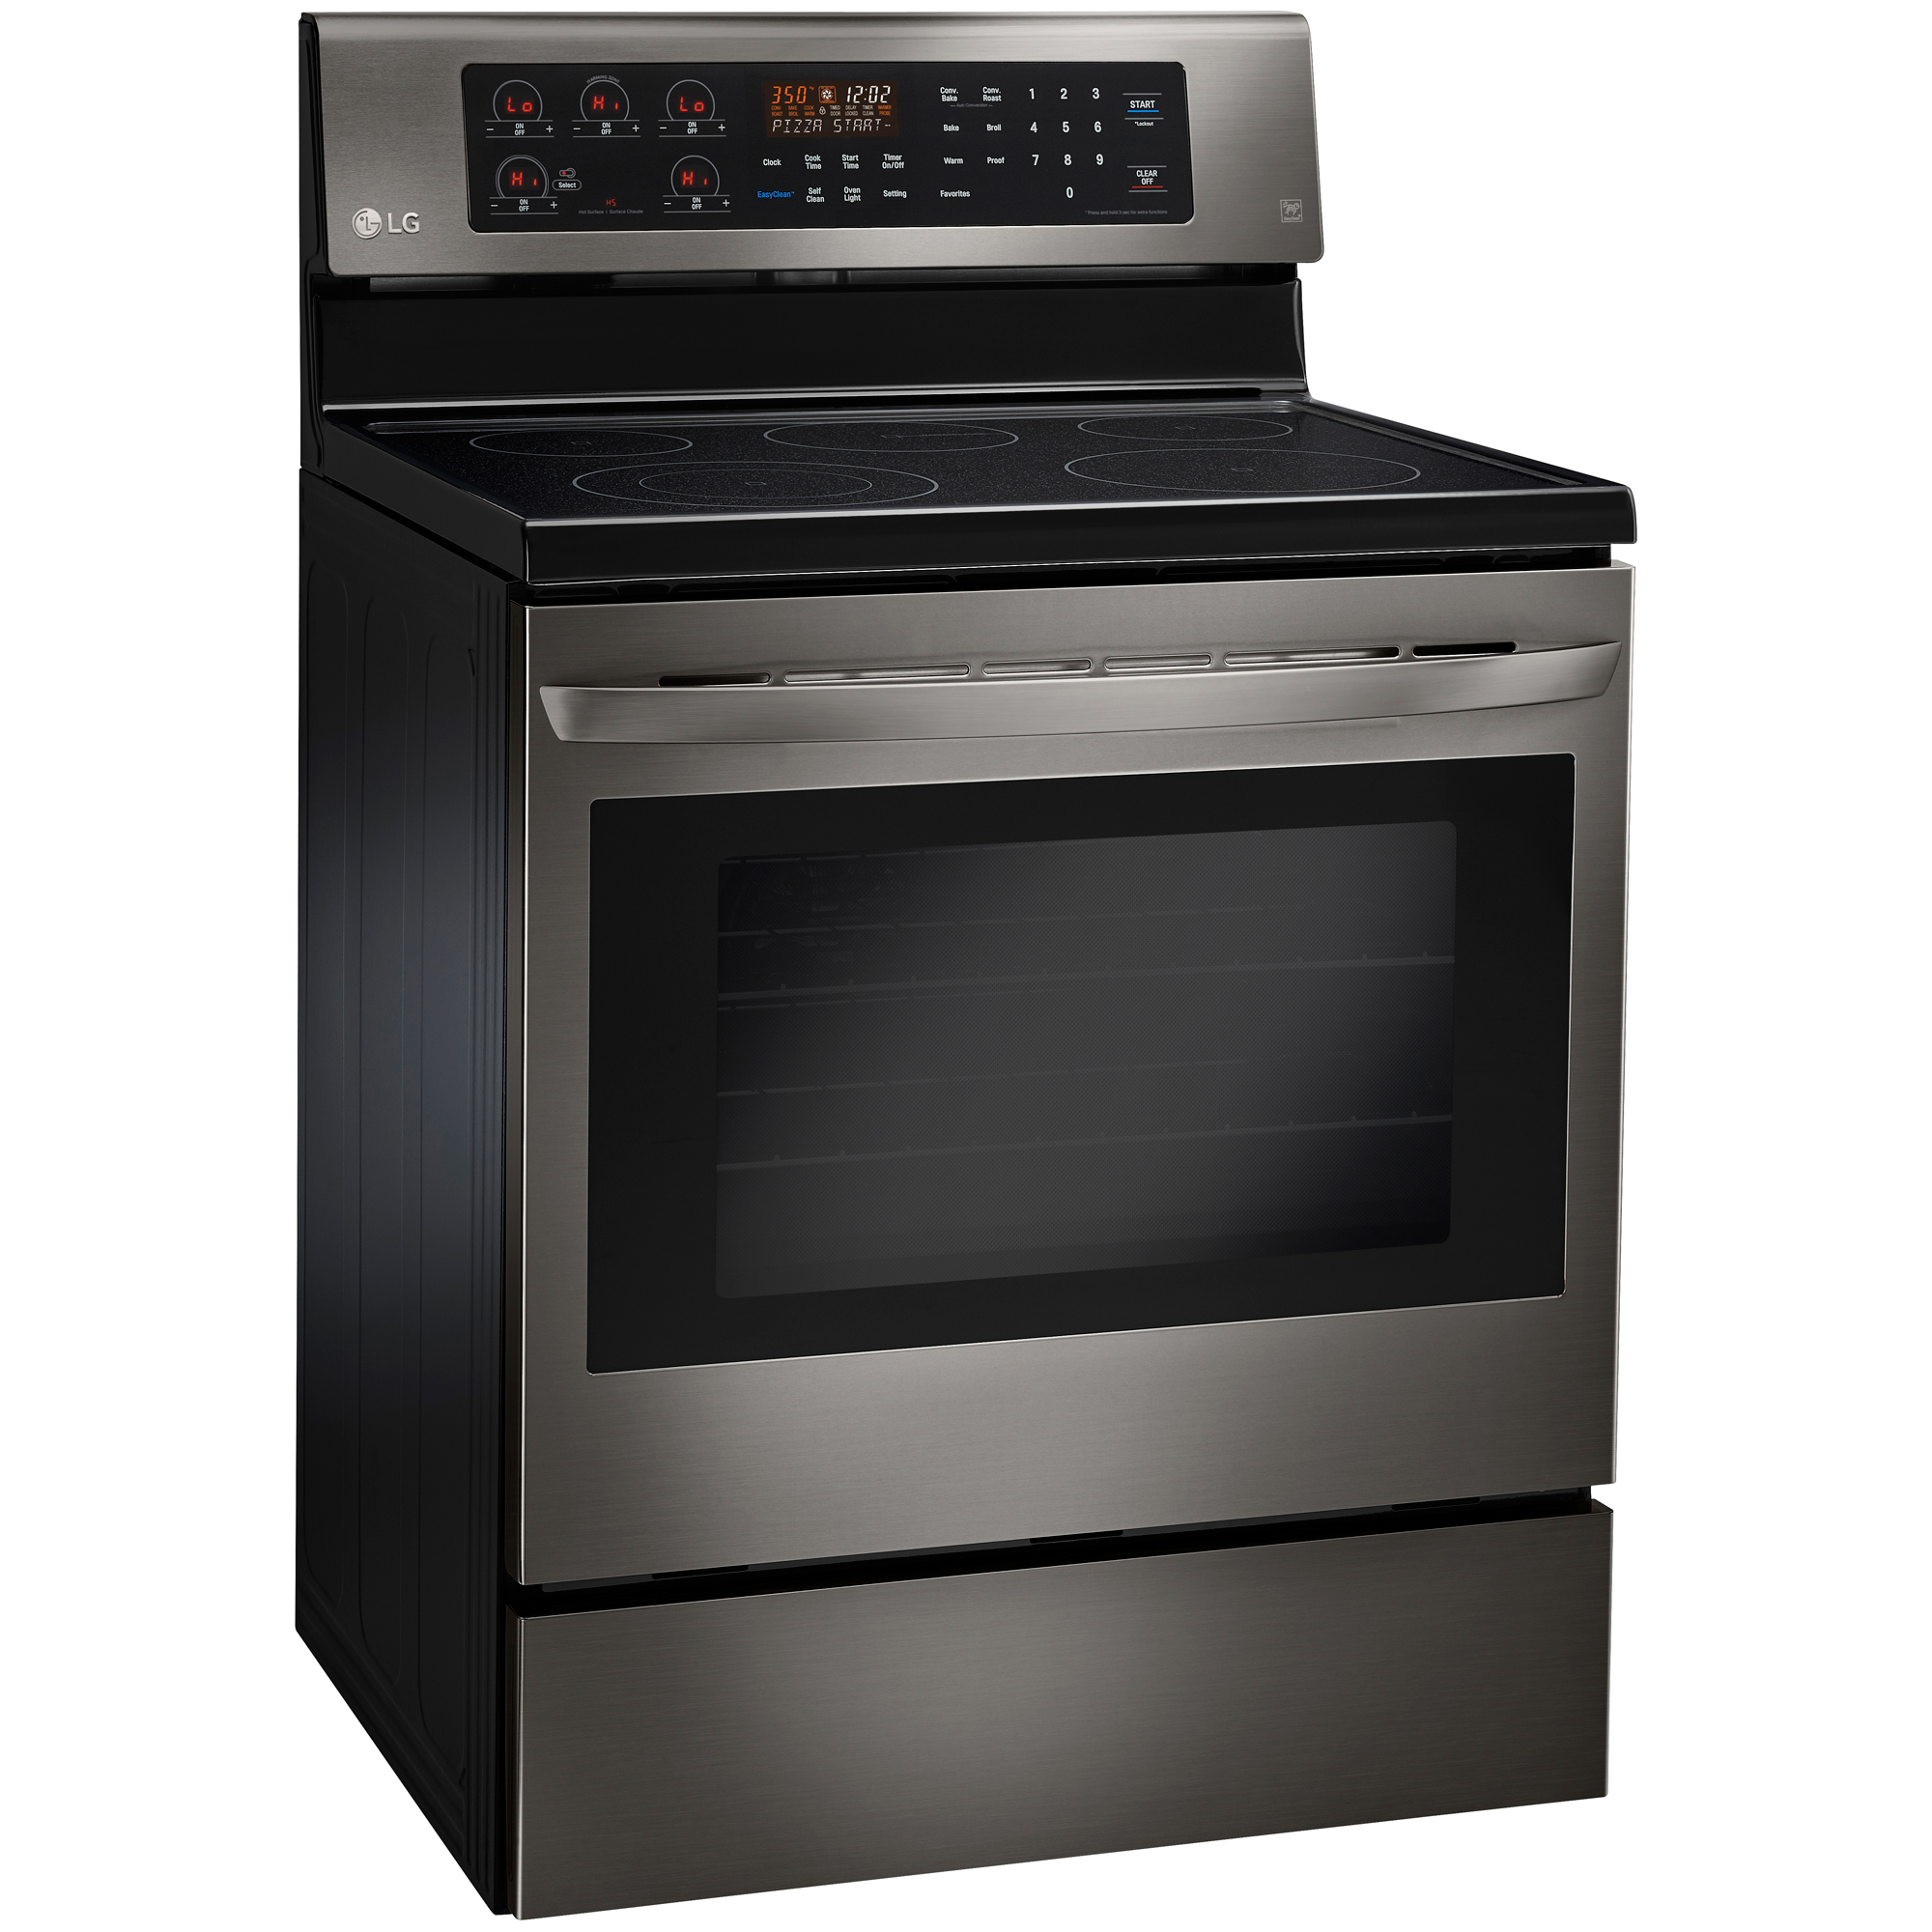 LG LRE3083BD 6.3 cu. ft. Free-Standing Electric Range - Black Stainless Steel